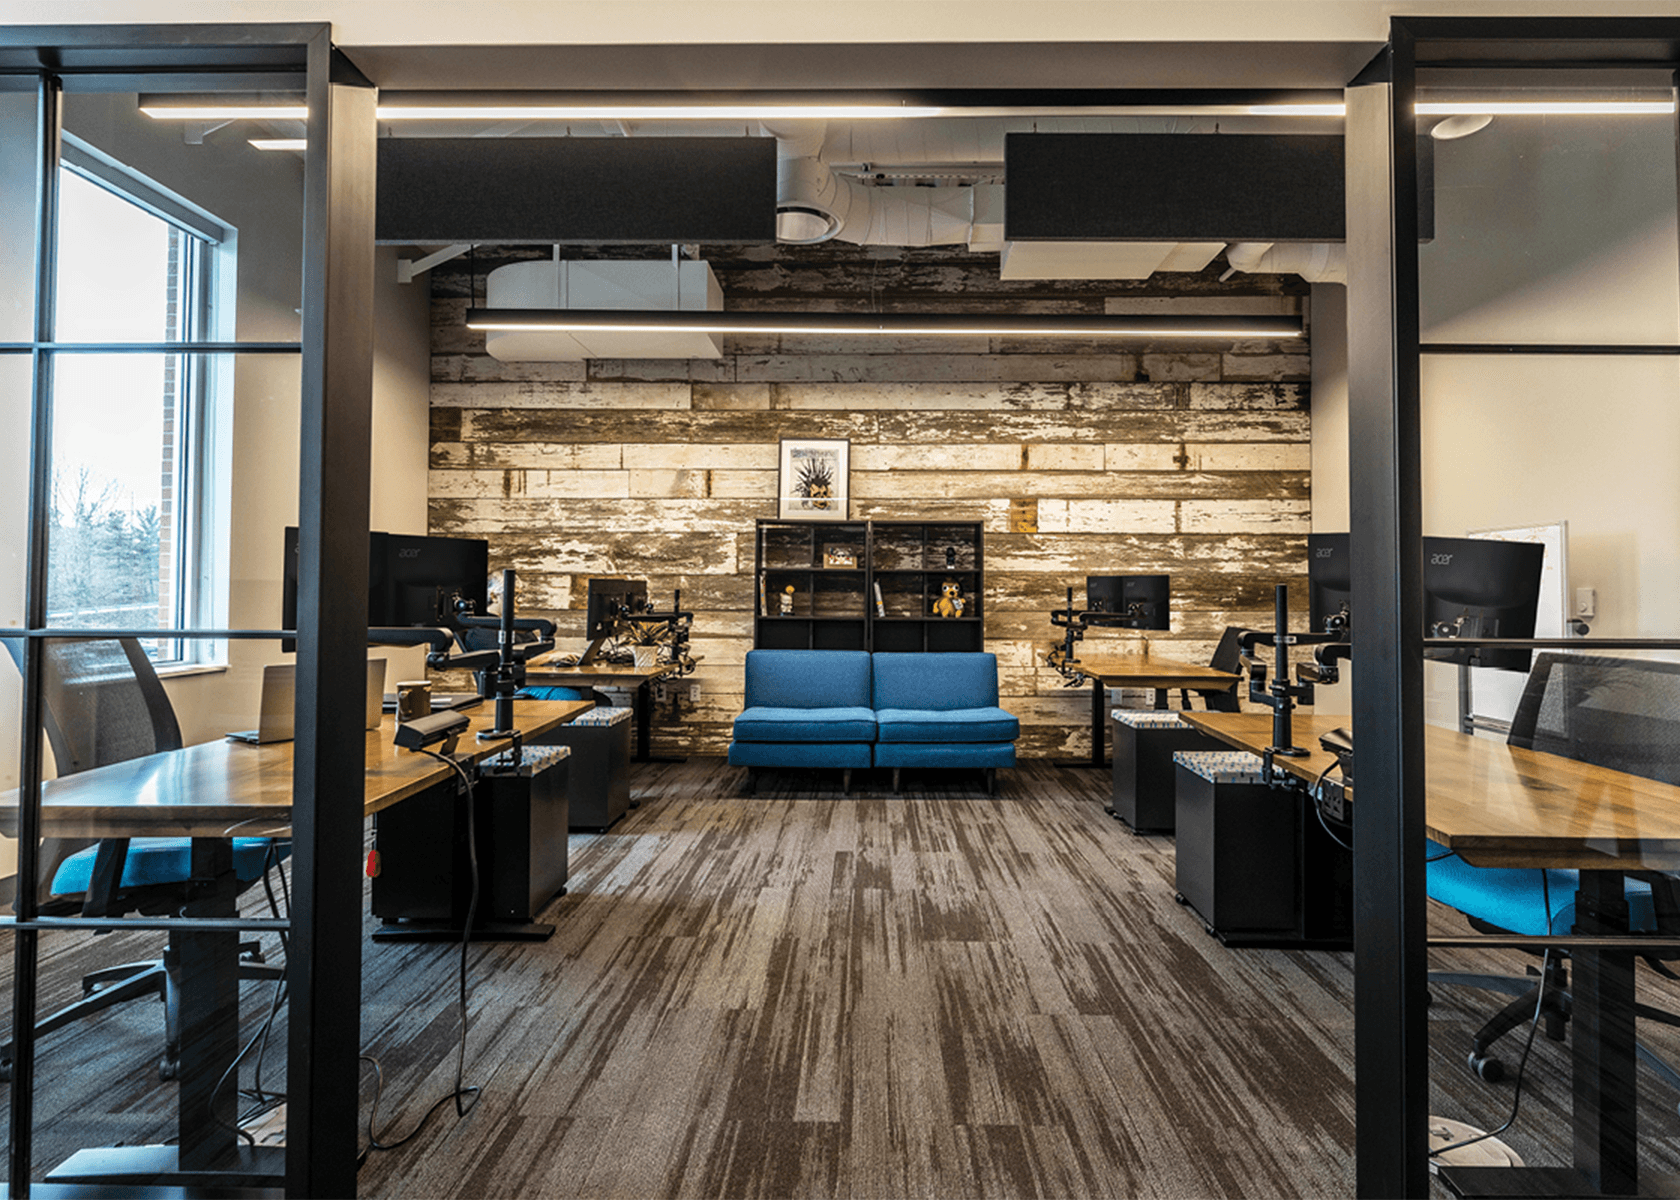 Office with rustic modern aesthetic, with desks and computer monitors